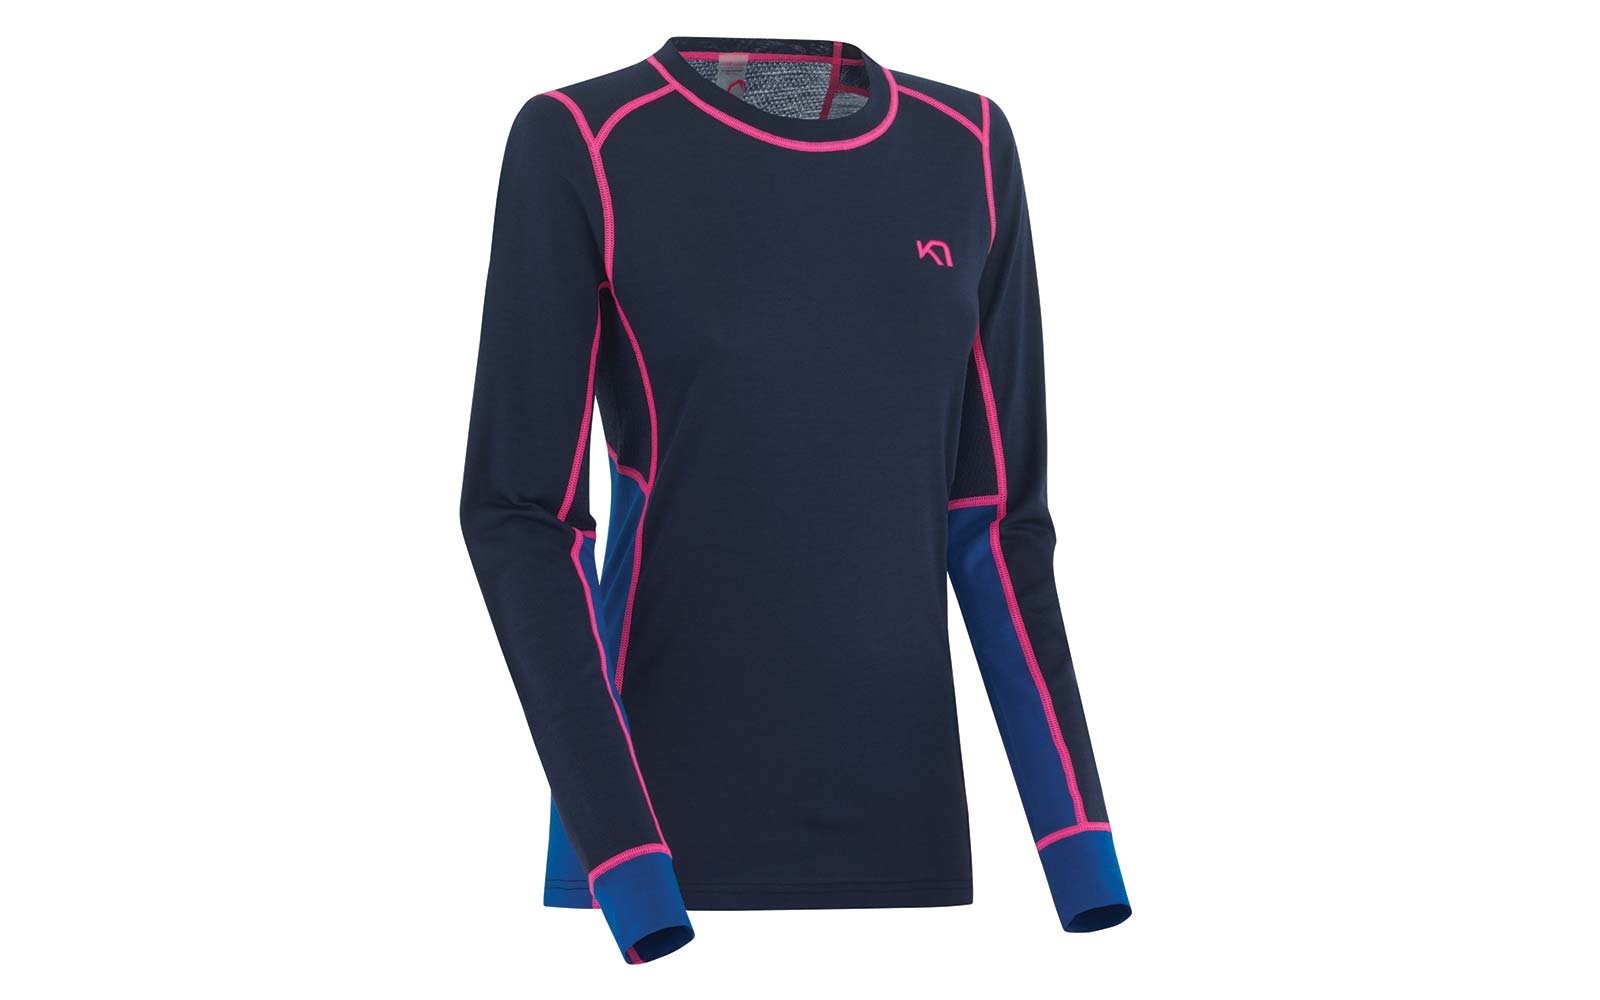 Kari Traa Tikse Baselayer long sleeve